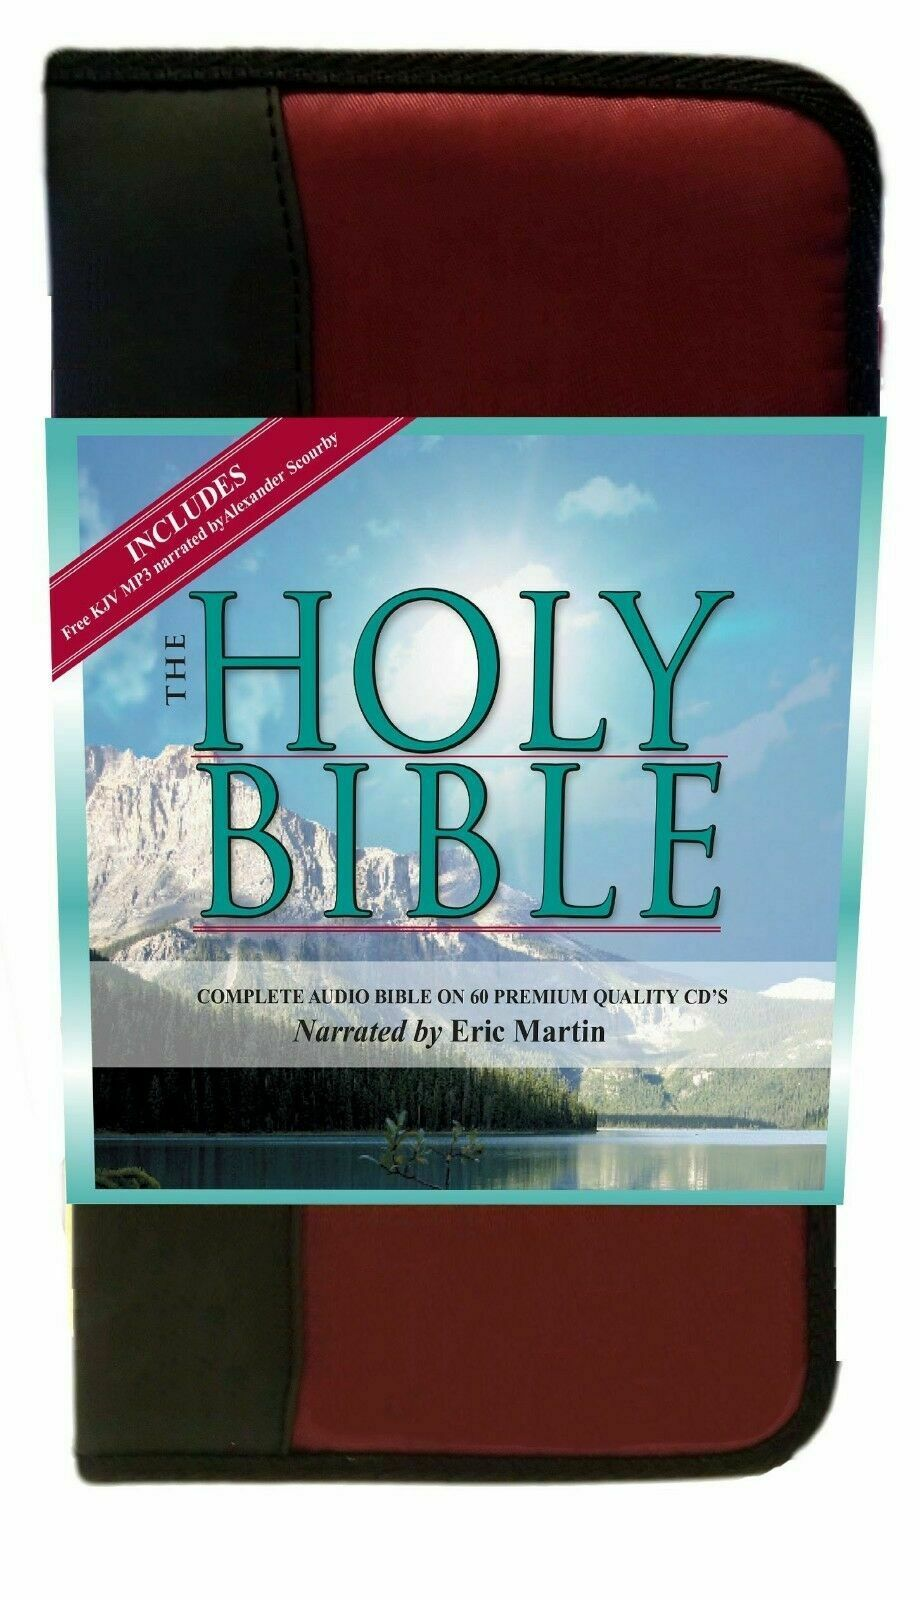 King James Version Audio Bible on CD Alexander Scourby Complete Very Good